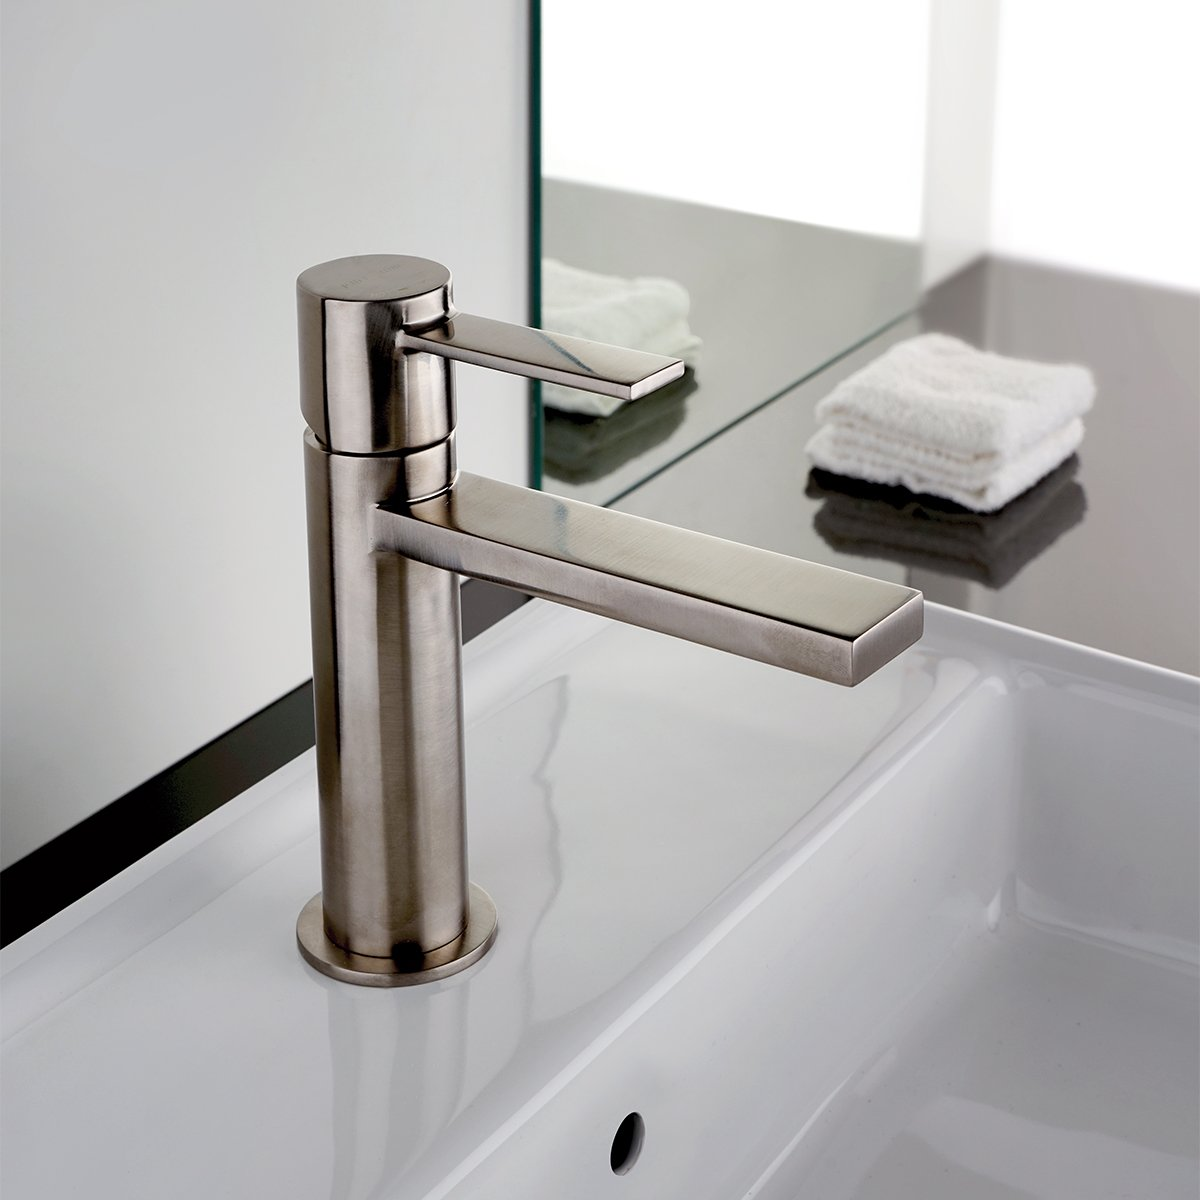 ... With Many Different Bathroom Settings. Check Our Gaia Collection Here U003e  Http://www.nocode.co.uk/products/collections/gaia/  U2026pic.twitter.com/6zGKw5KhSG